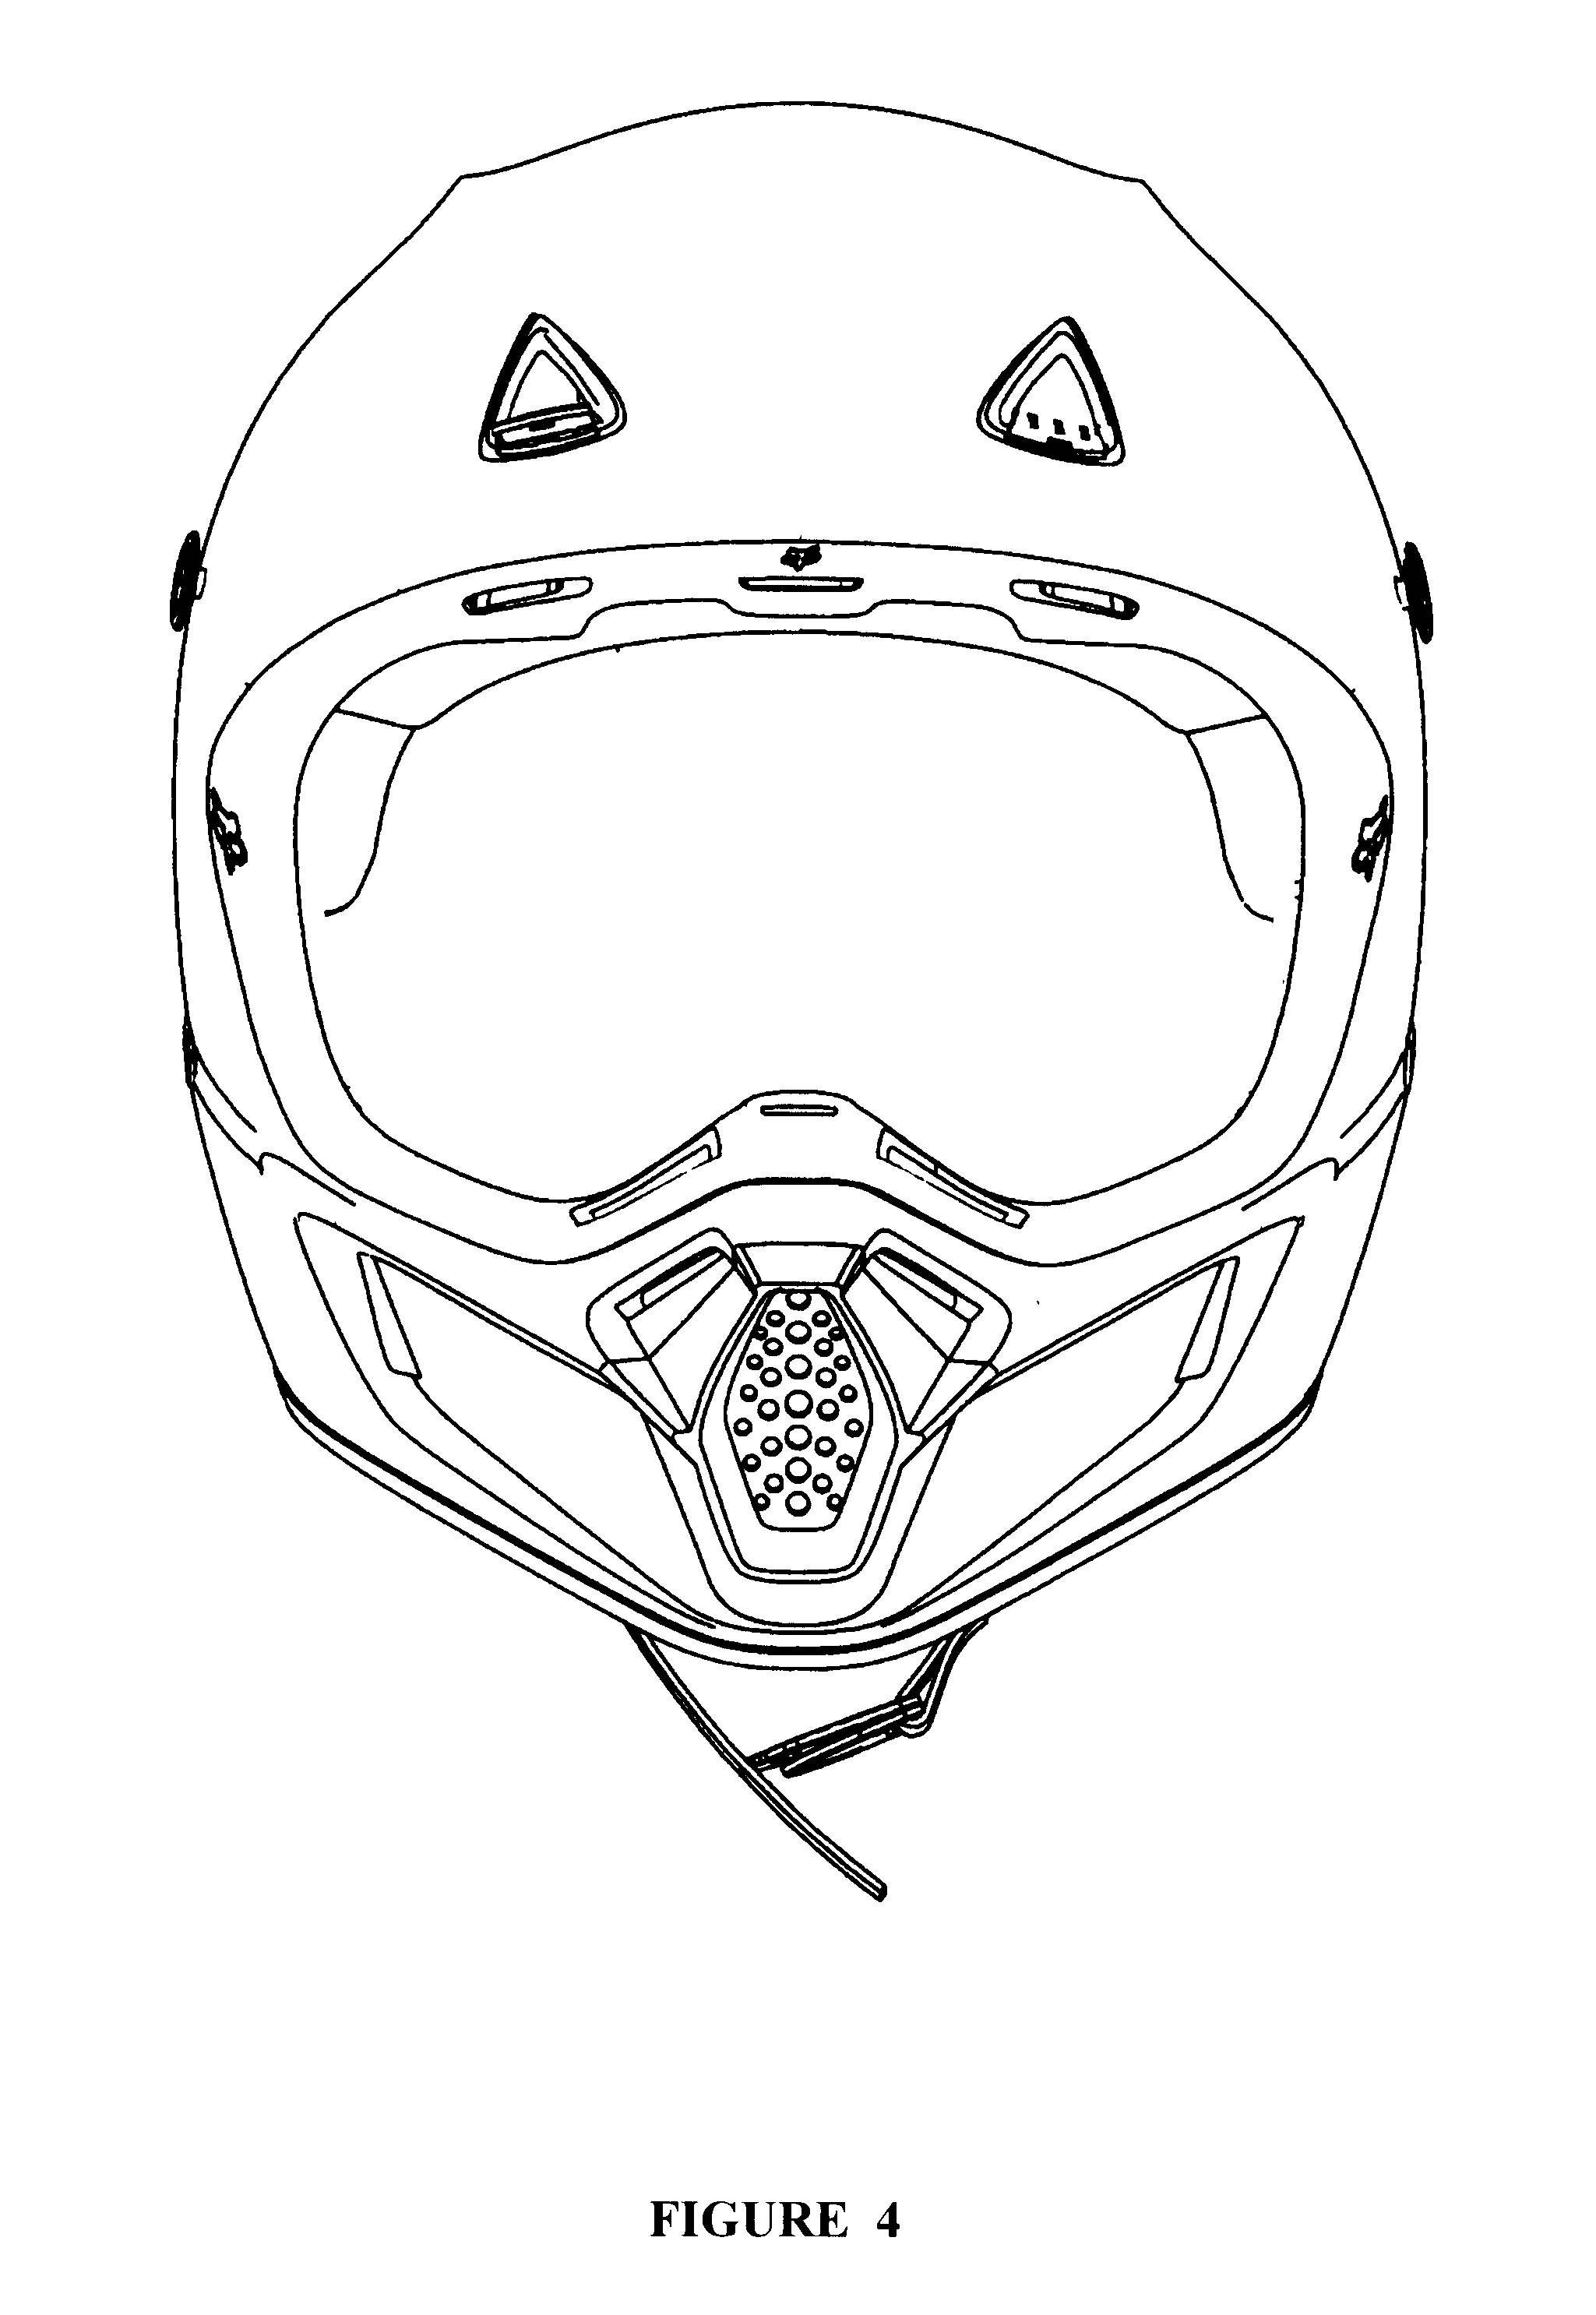 Motorcycle helmet drawing images for Motorcycle helmet coloring pages